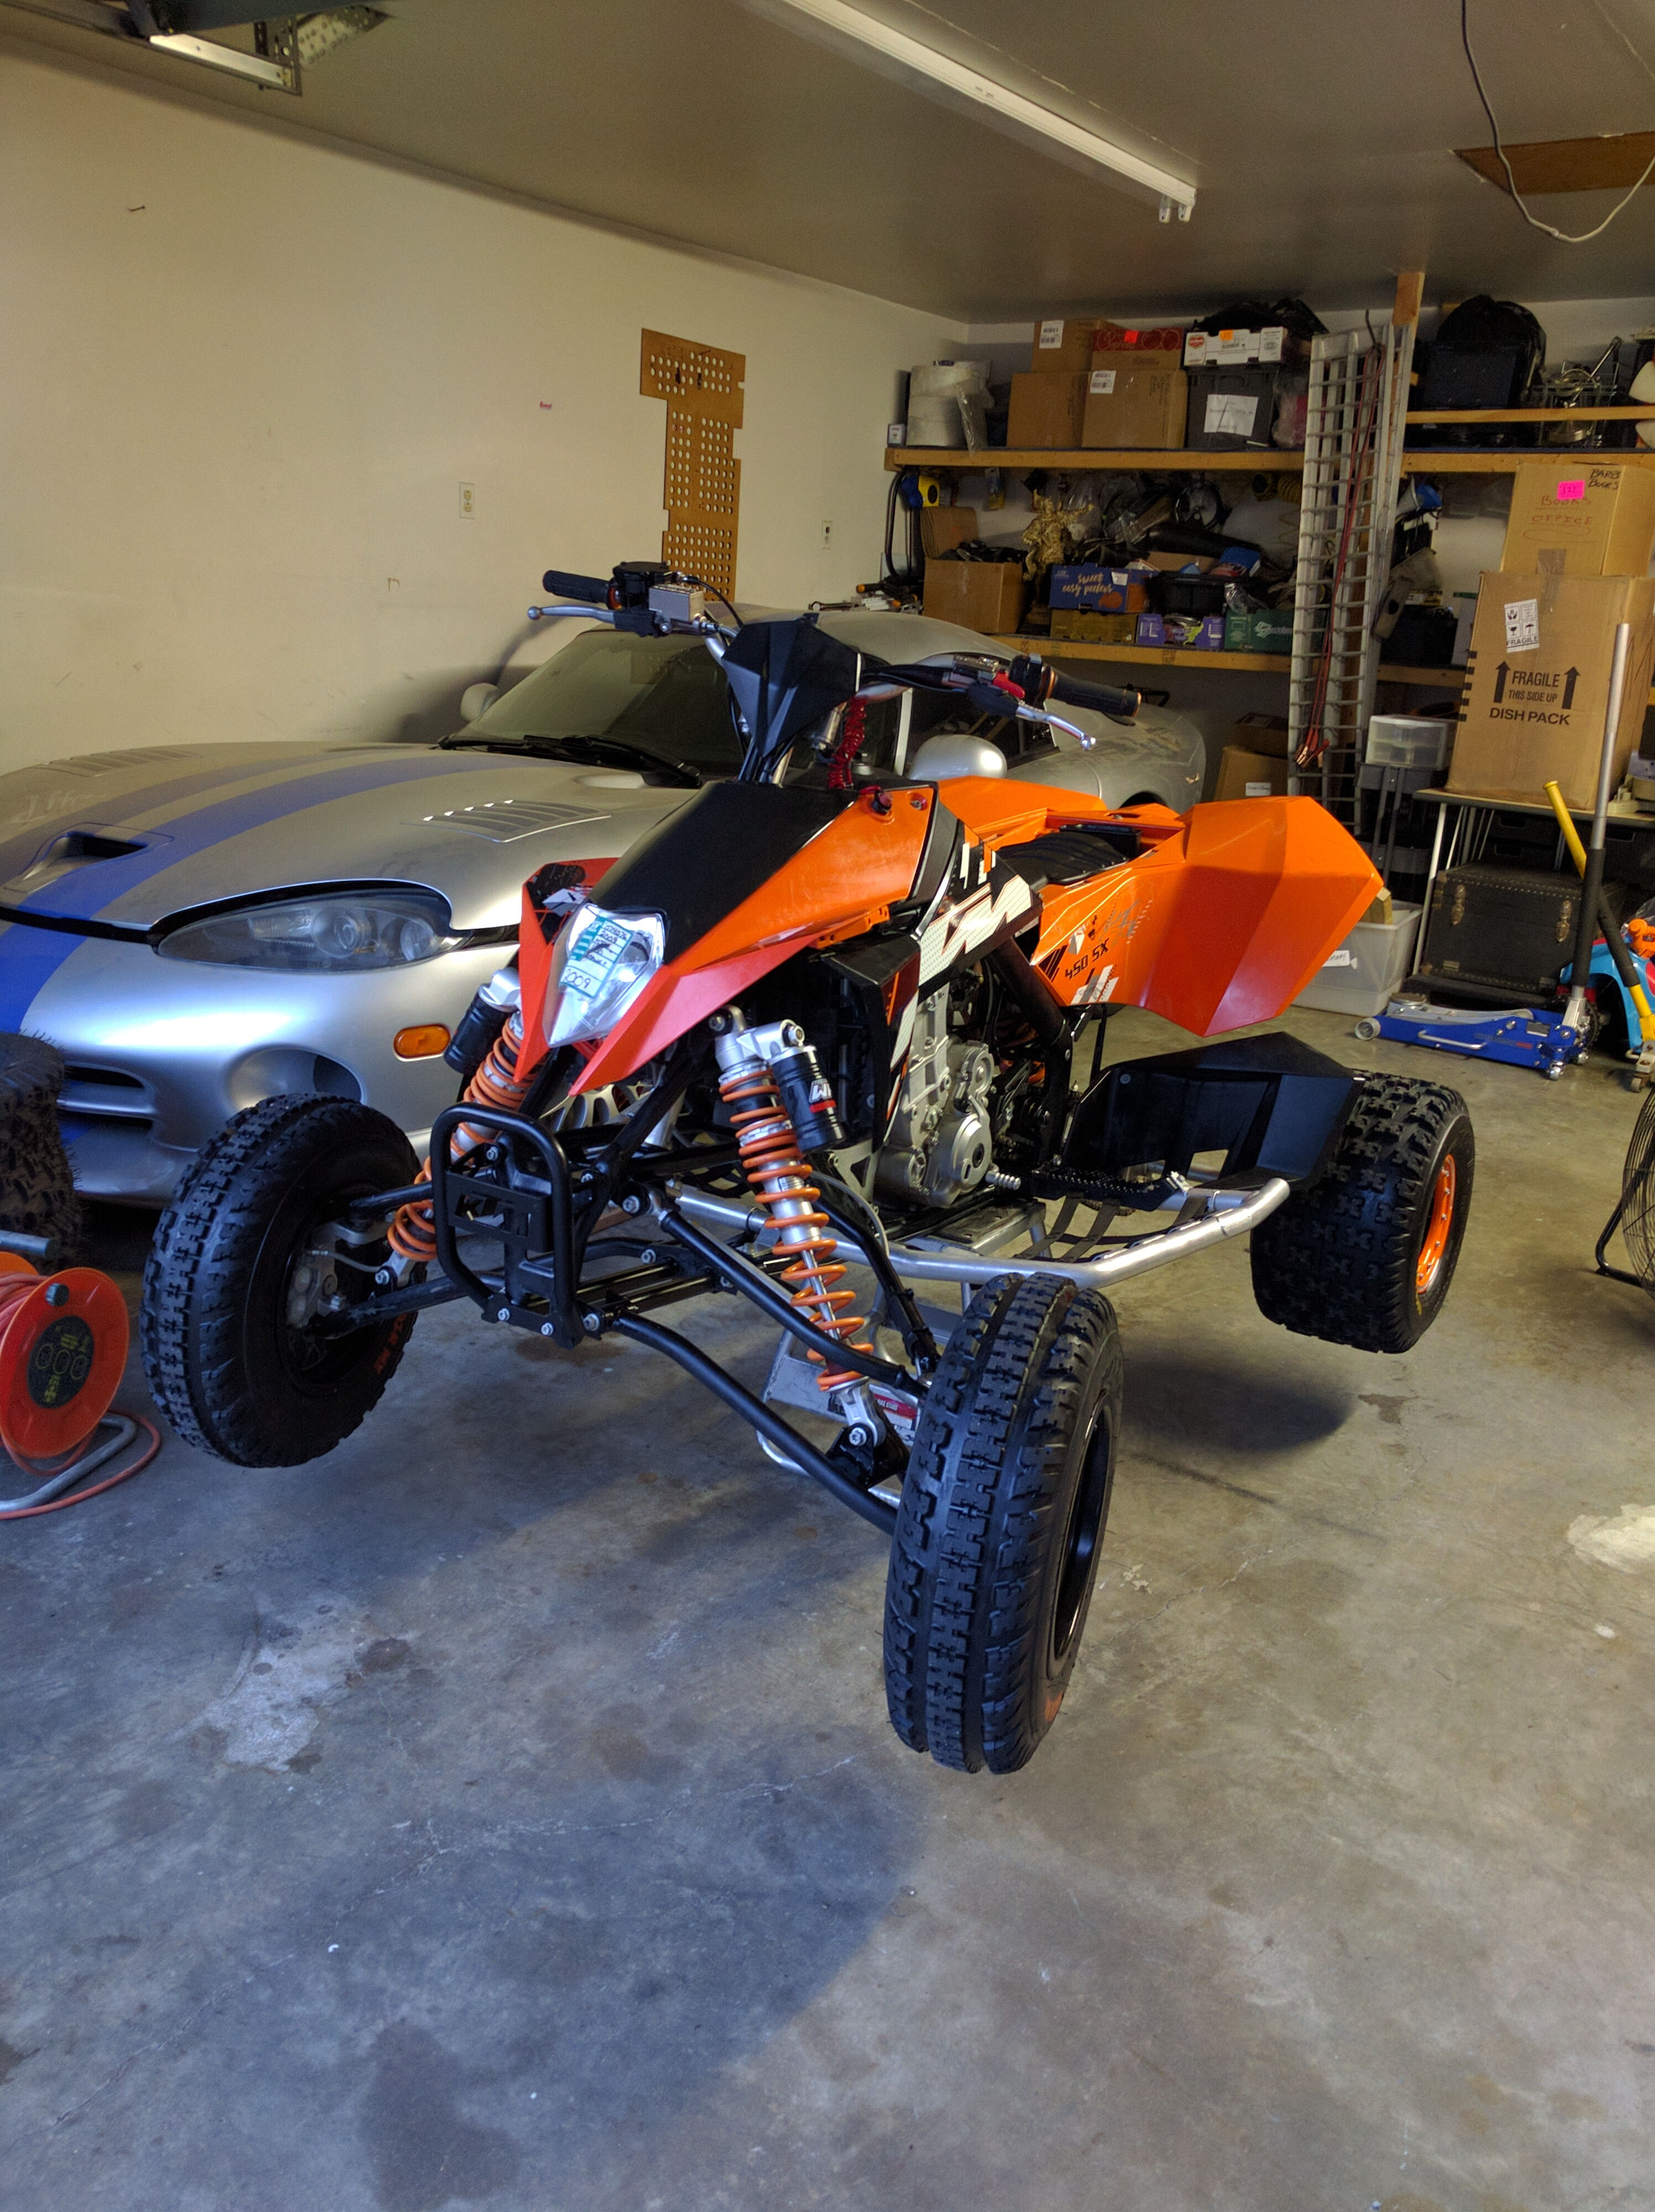 Picked up a new 450SX-img_20160531_201714.jpg